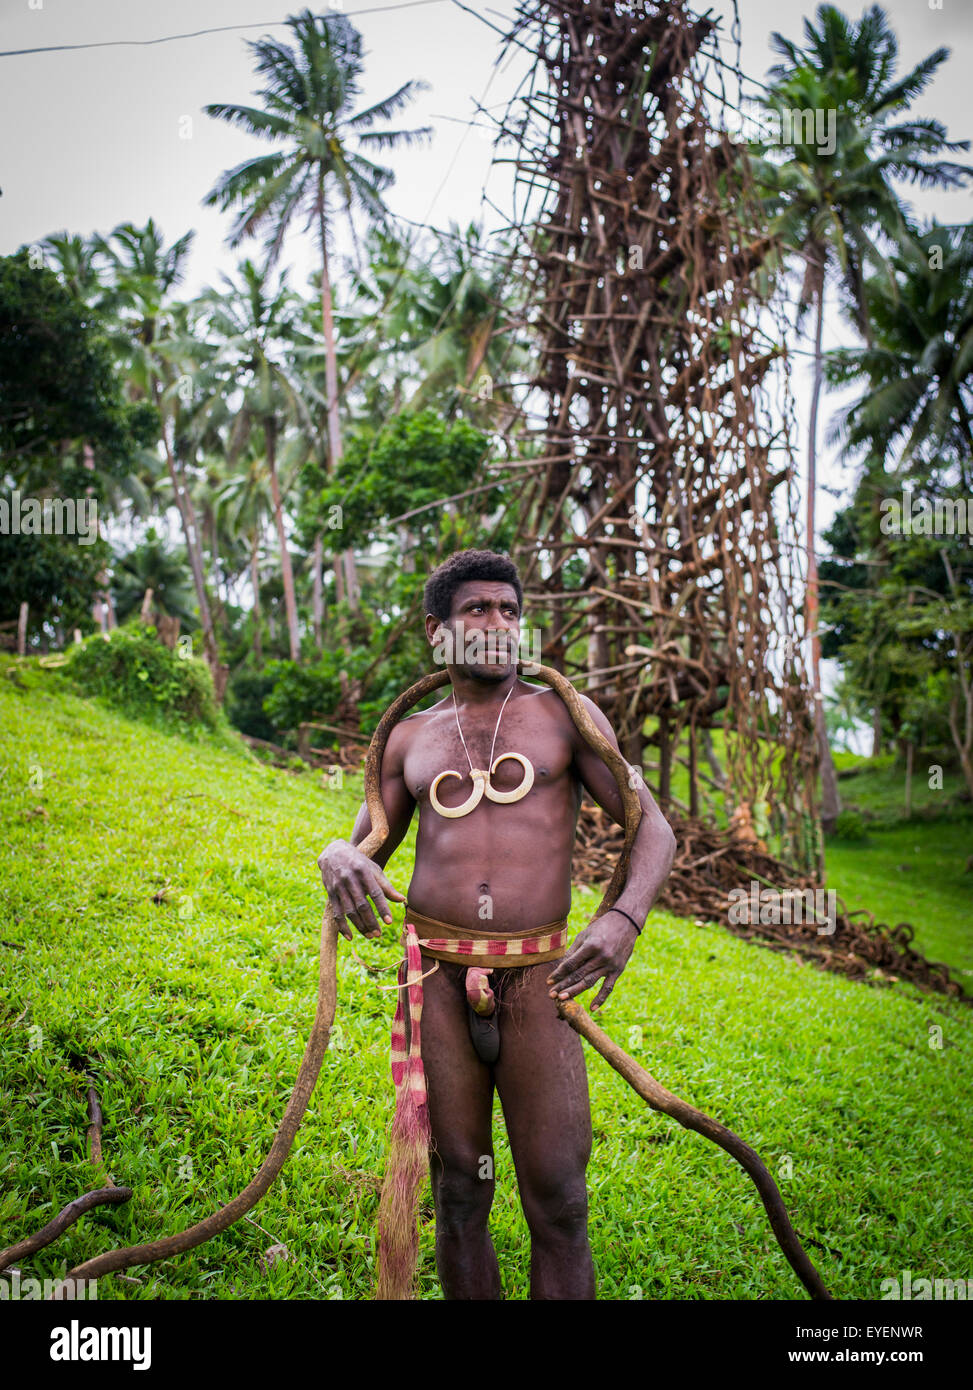 A land diver on Pentecost Island with the land diving tower behind him; Pentecost Island, Vanuatu - Stock Image